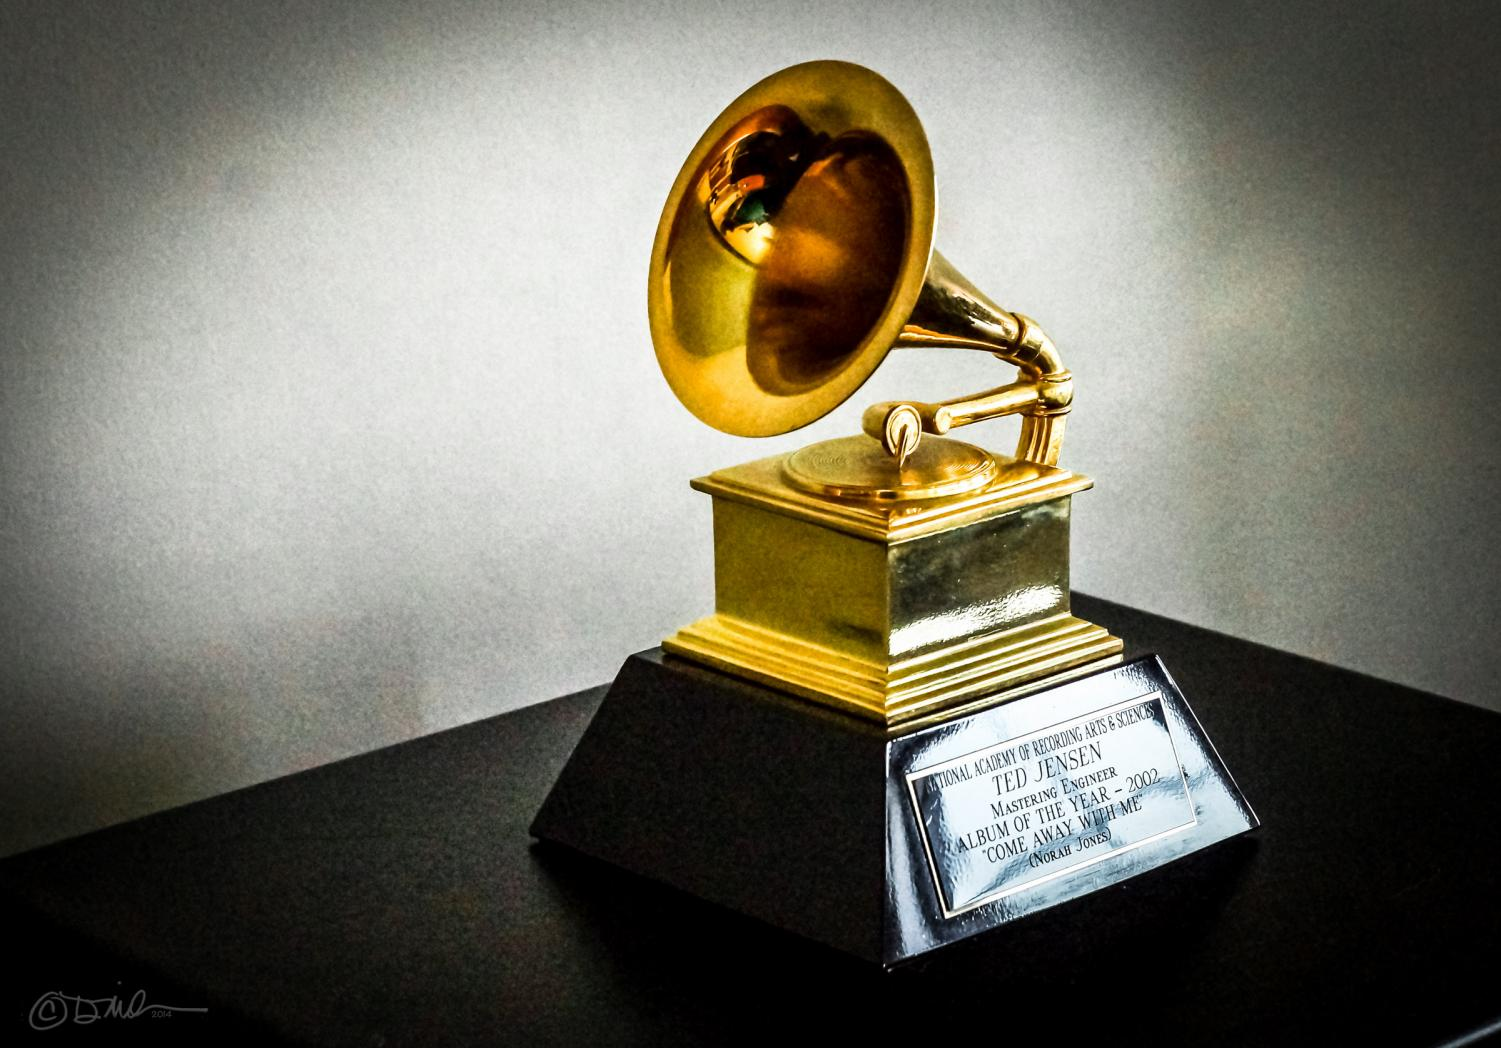 The Grammys award many talented artists from throughout the year.